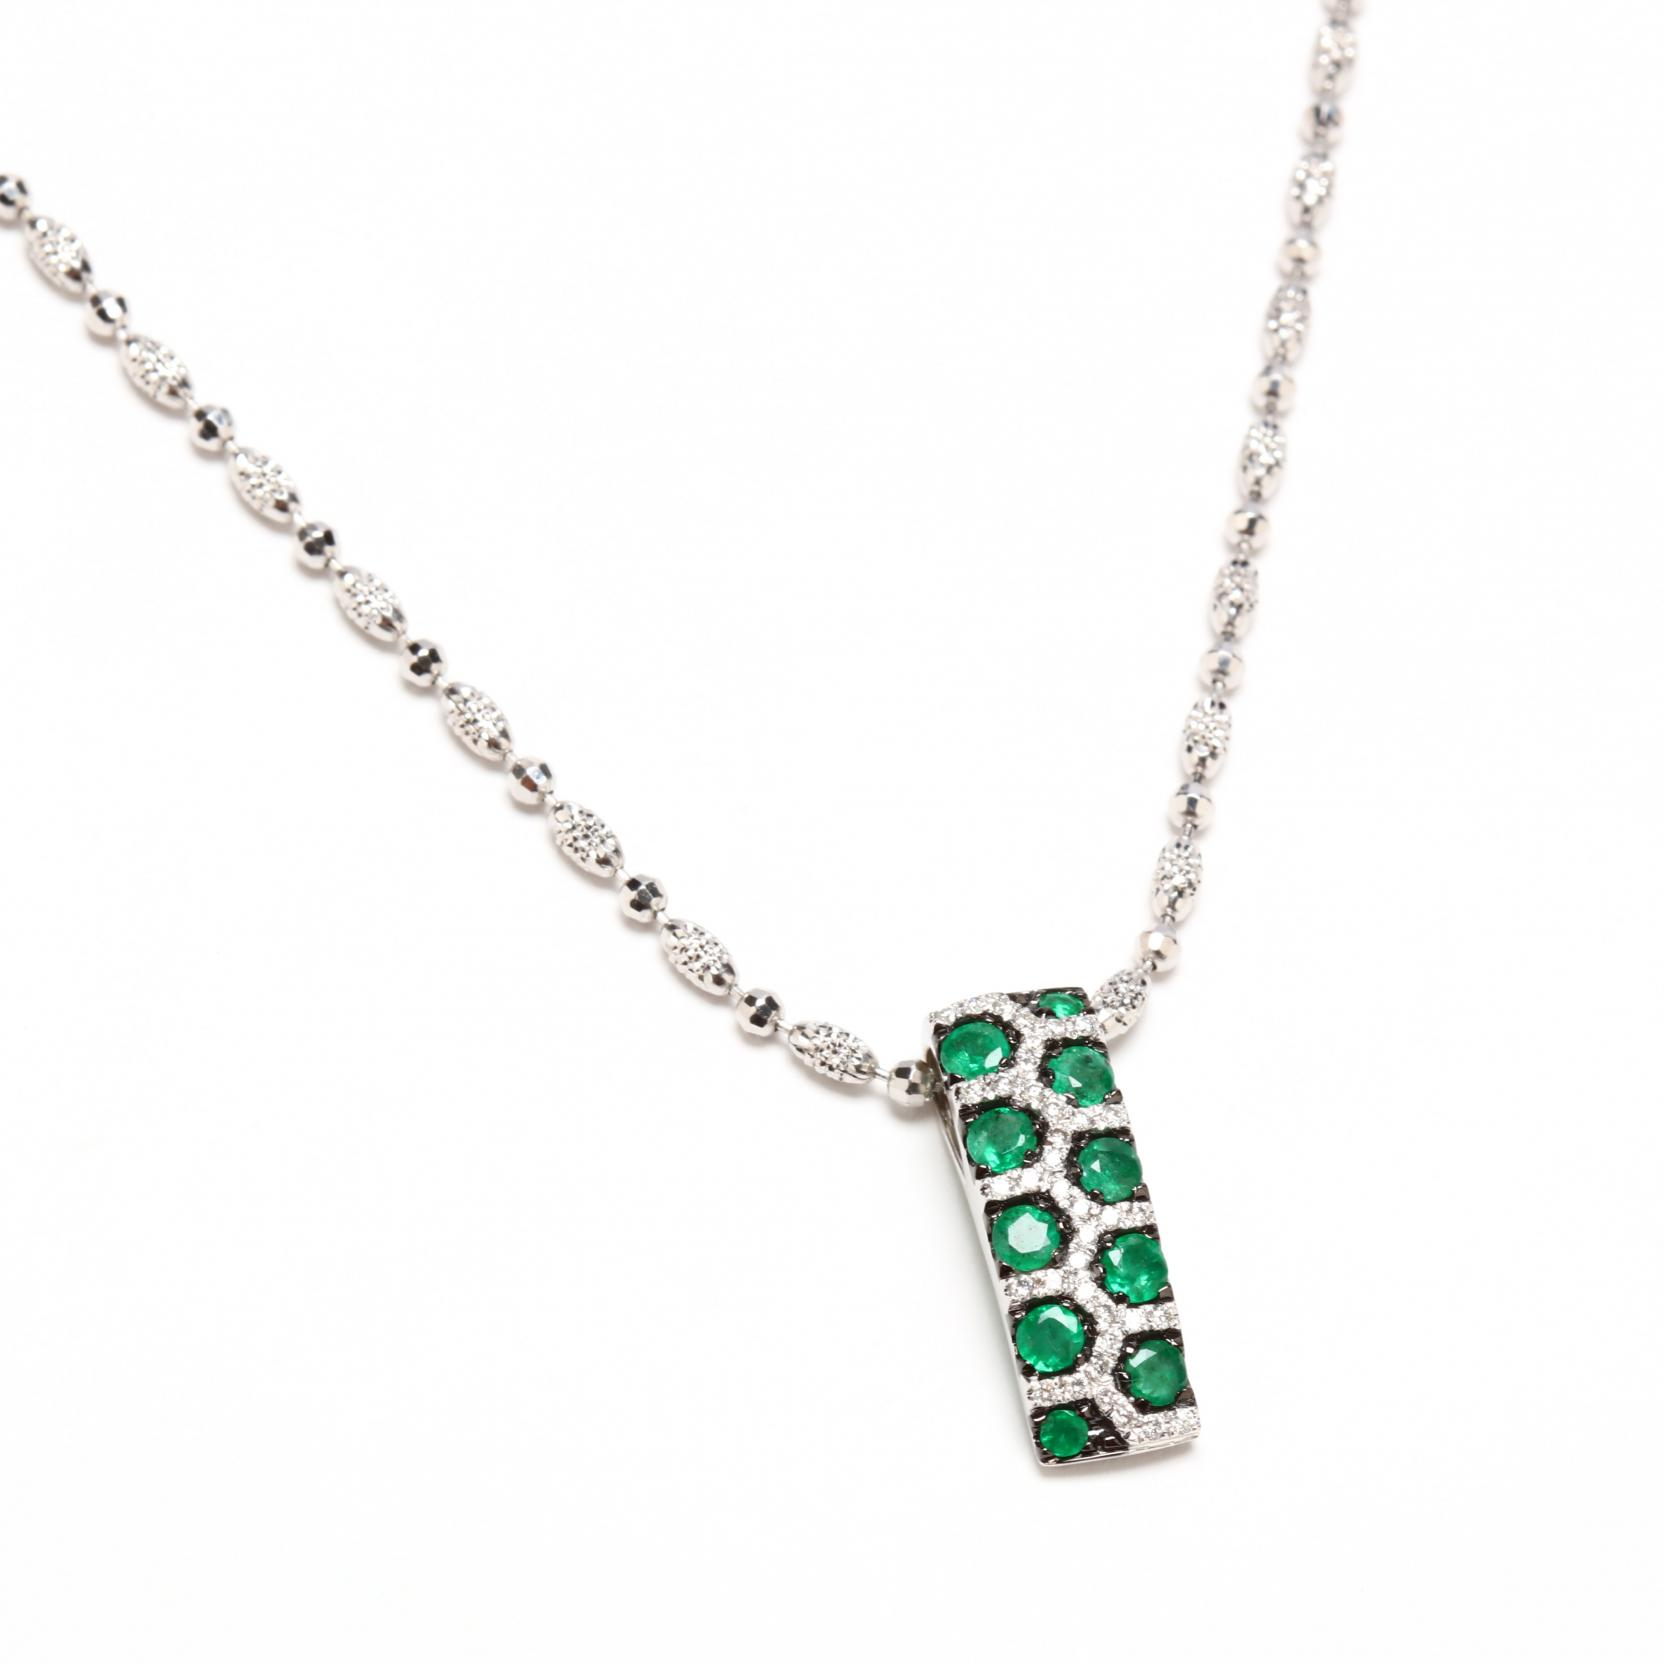 18kt-white-gold-diamond-and-emerald-necklace-italy